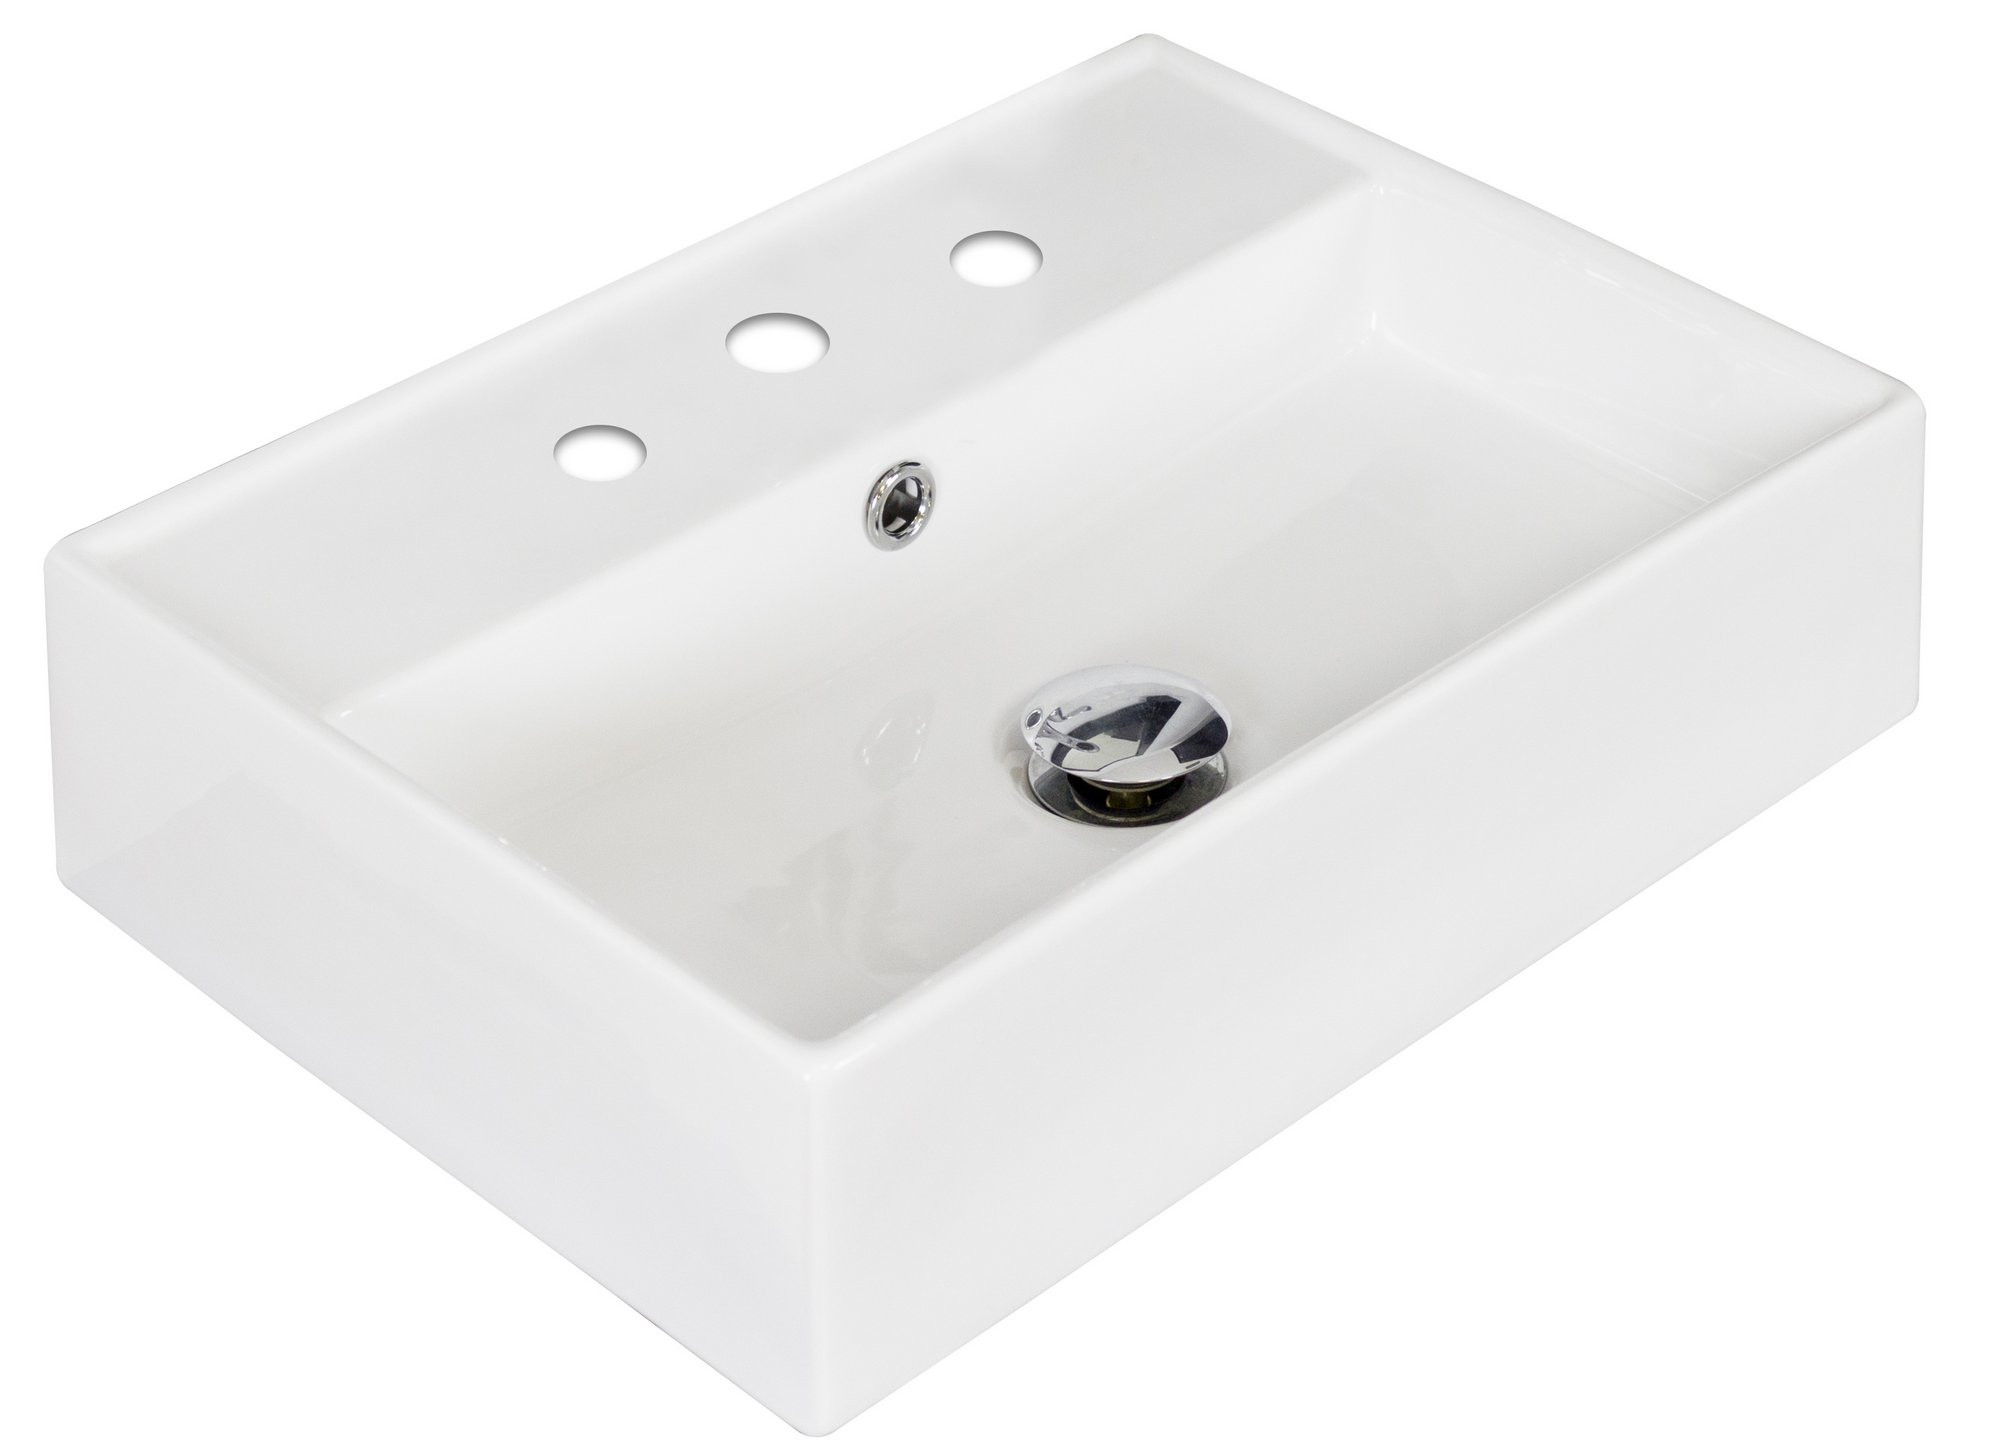 American Imagination AI-1330 Above Counter Rectangle Vessel In White Color For 8-in. o.c. Faucet